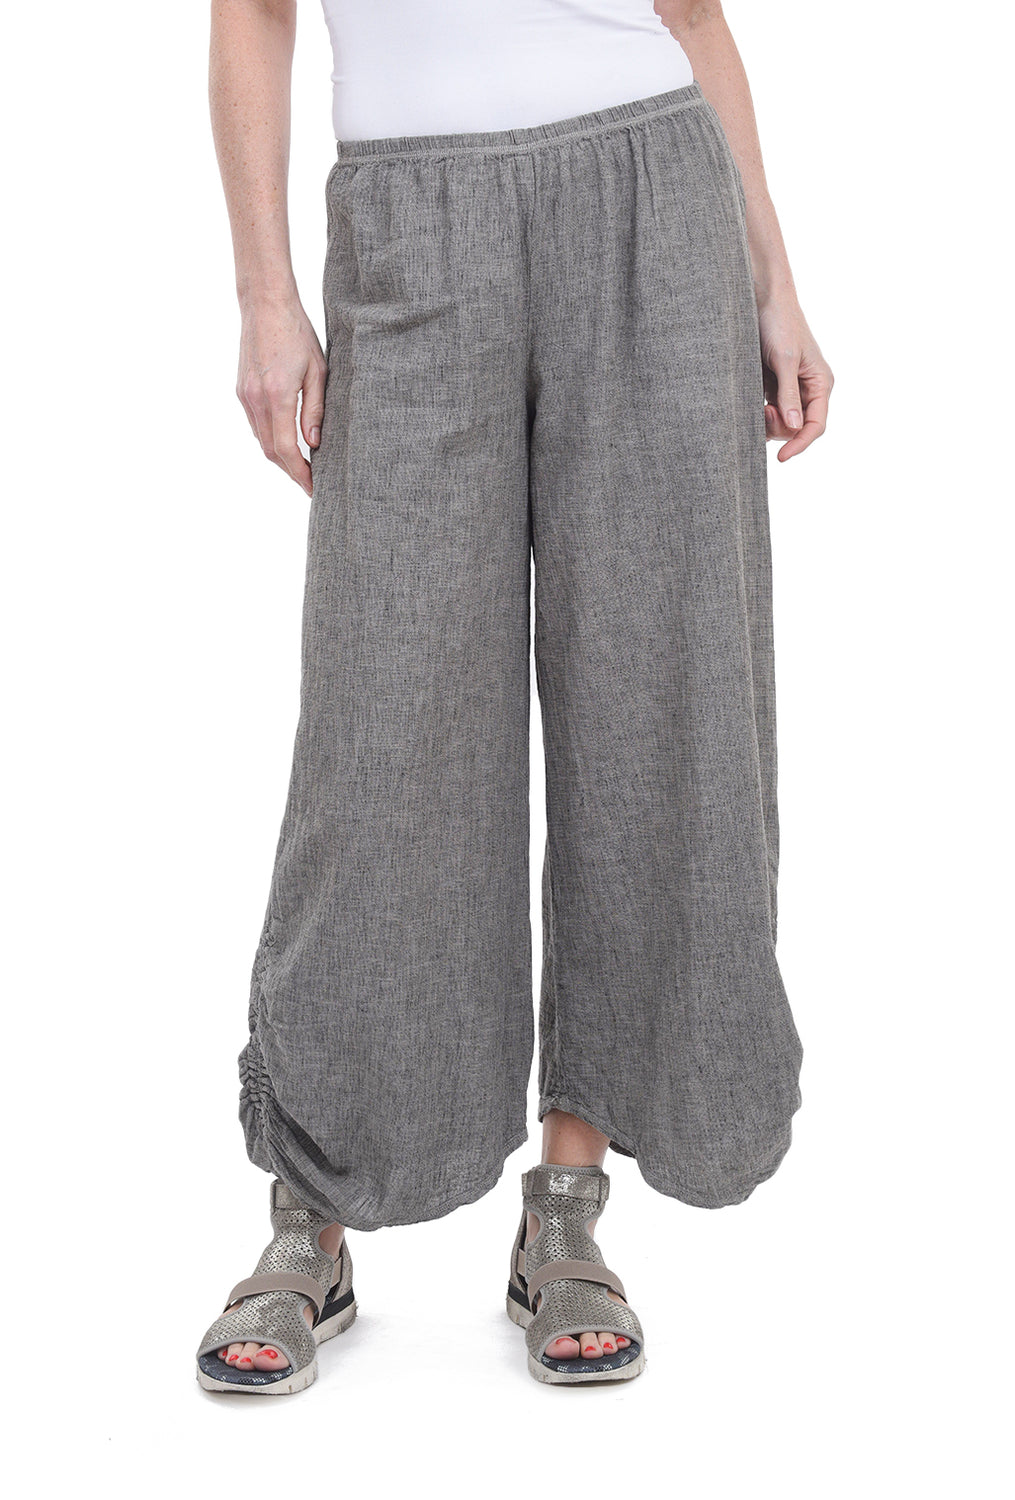 Cut Loose Crosshatch Ruched Pants, Lentil Taupe